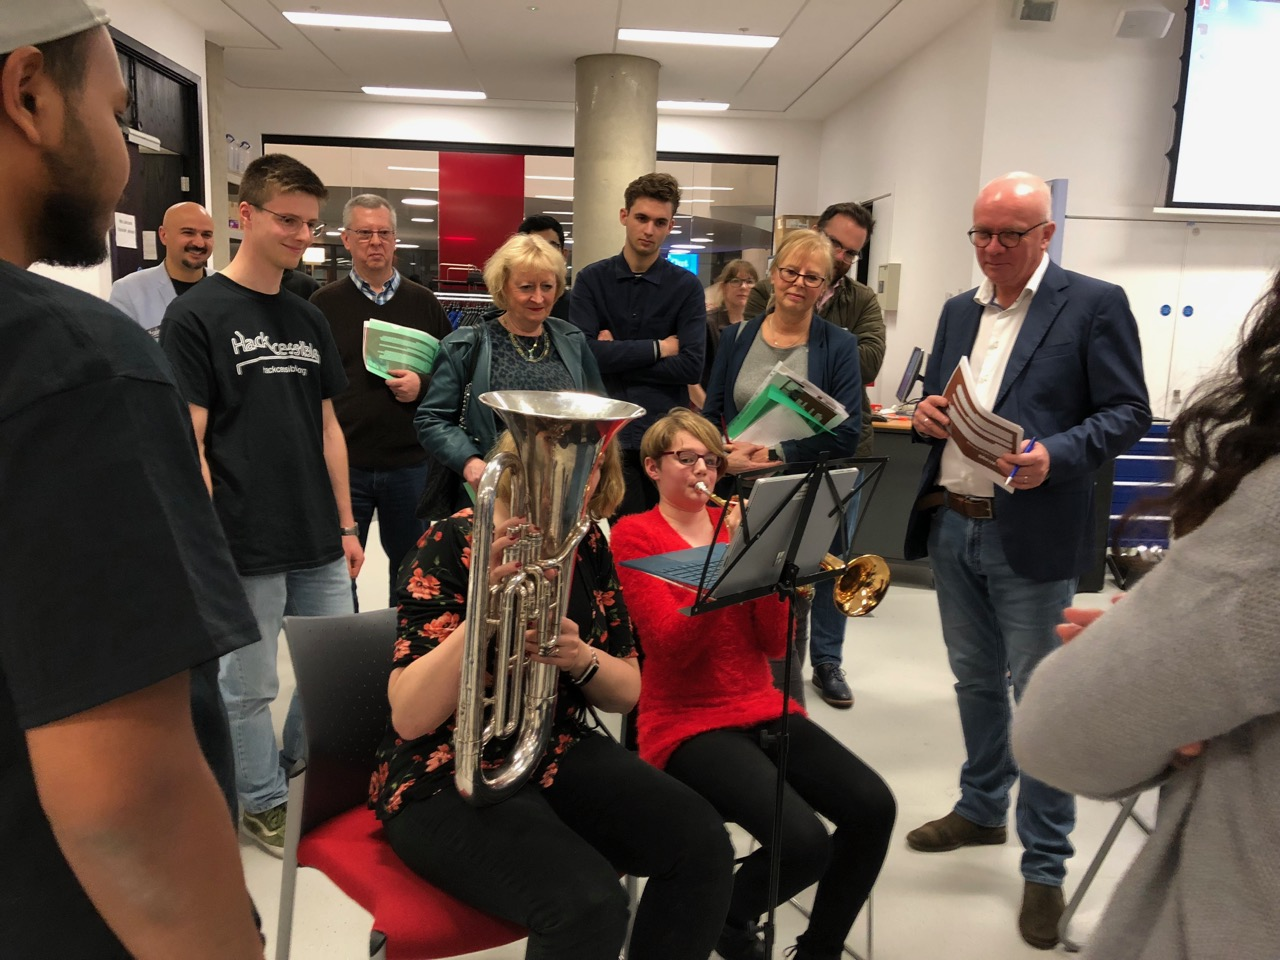 Image of the winning Hackcessible 2018 team, playing the euphonium using their hackcessible solution